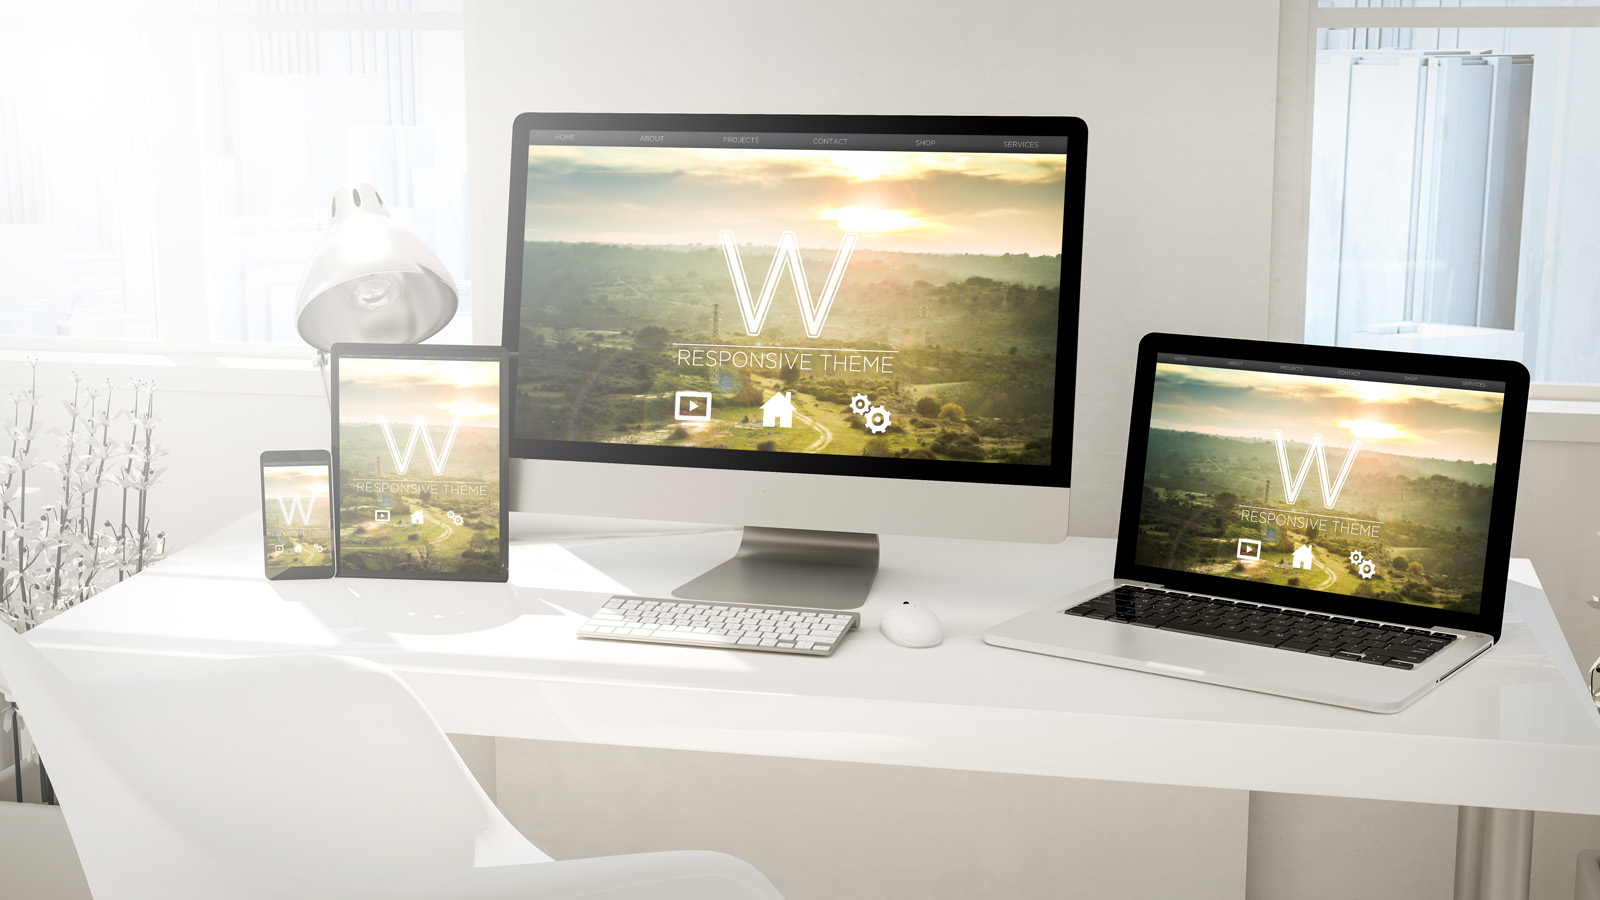 Monitor, laptop, tablet, phone with modern template on table in desktop office. 3d rendering.